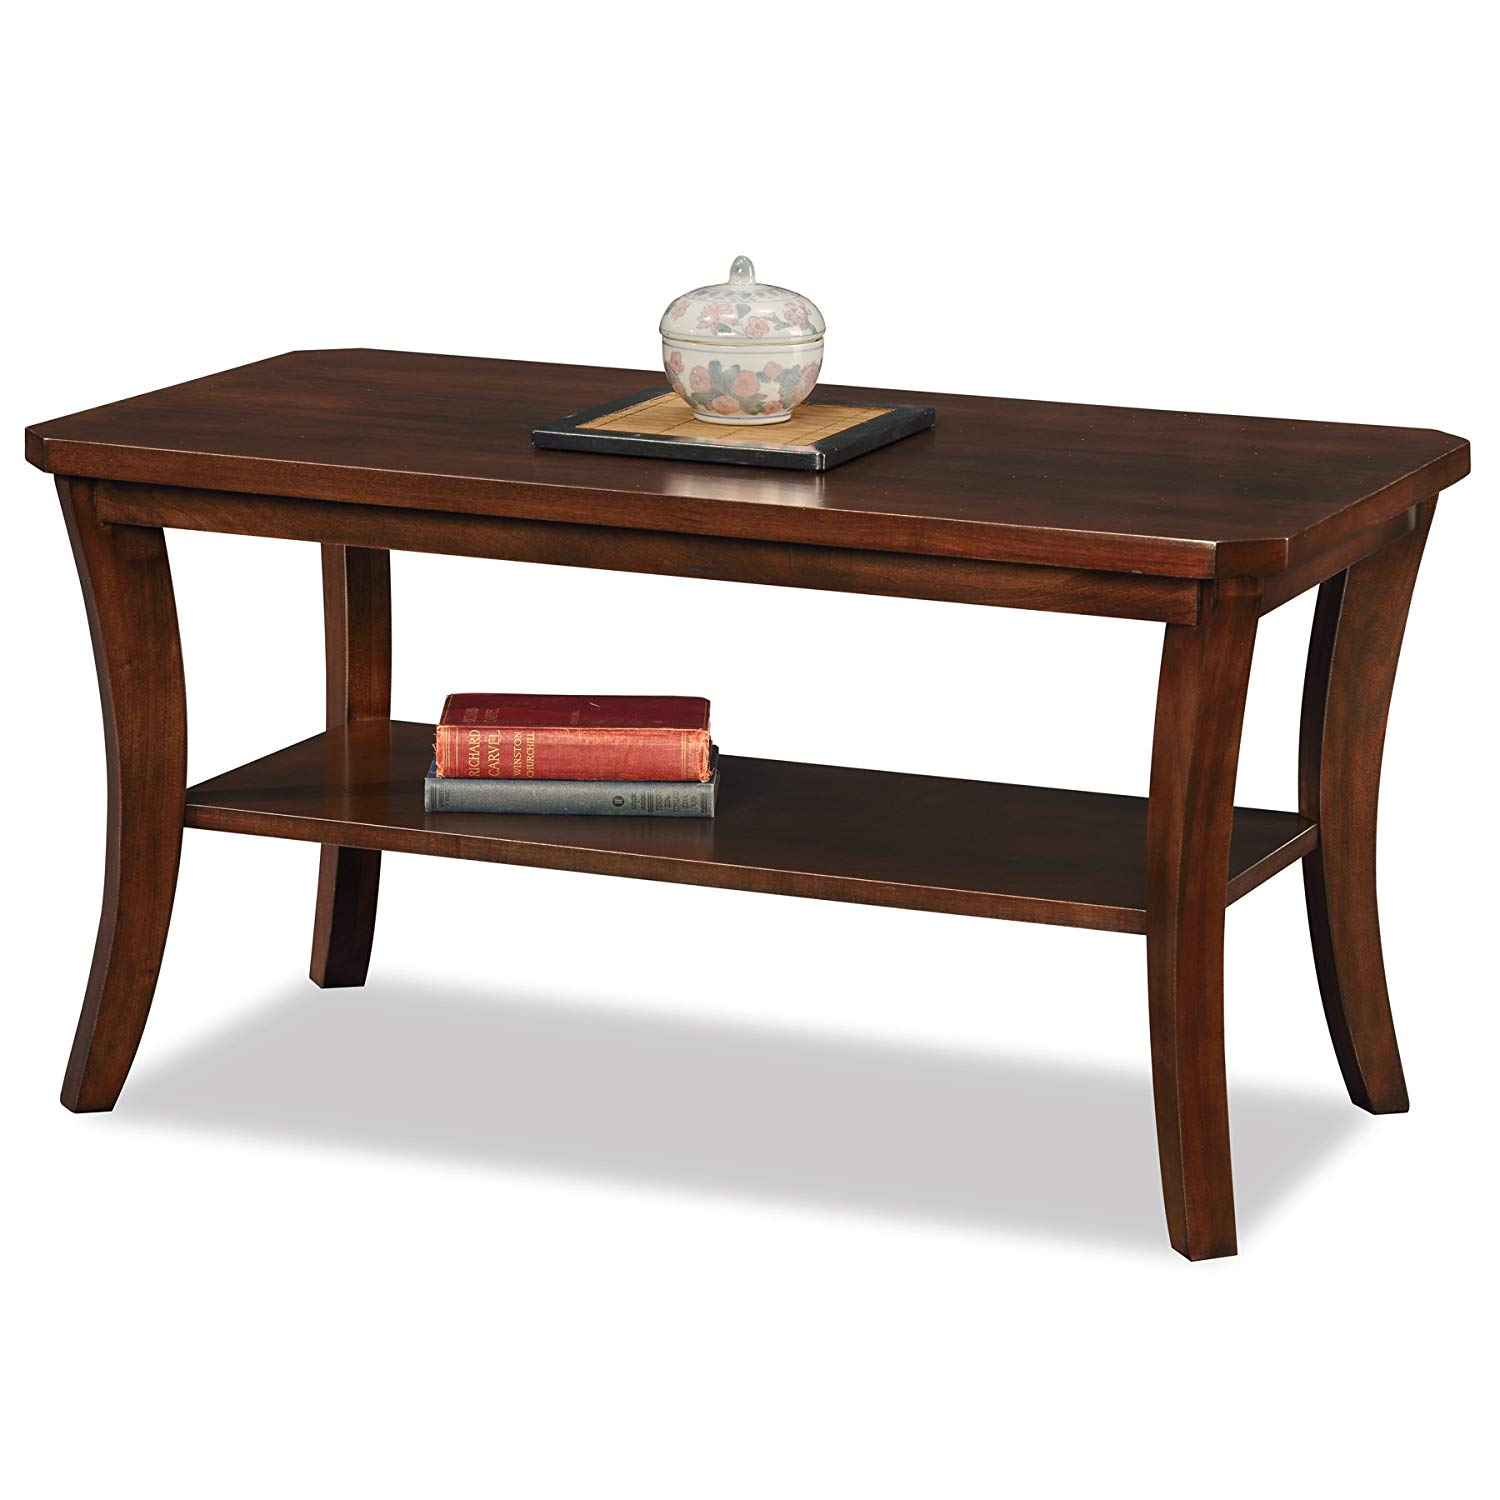 leick furniture boa collection solid wood condo end tables apartment coffee table kitchen dining wicker card luxury folding office antique marble top unique amish chattanooga